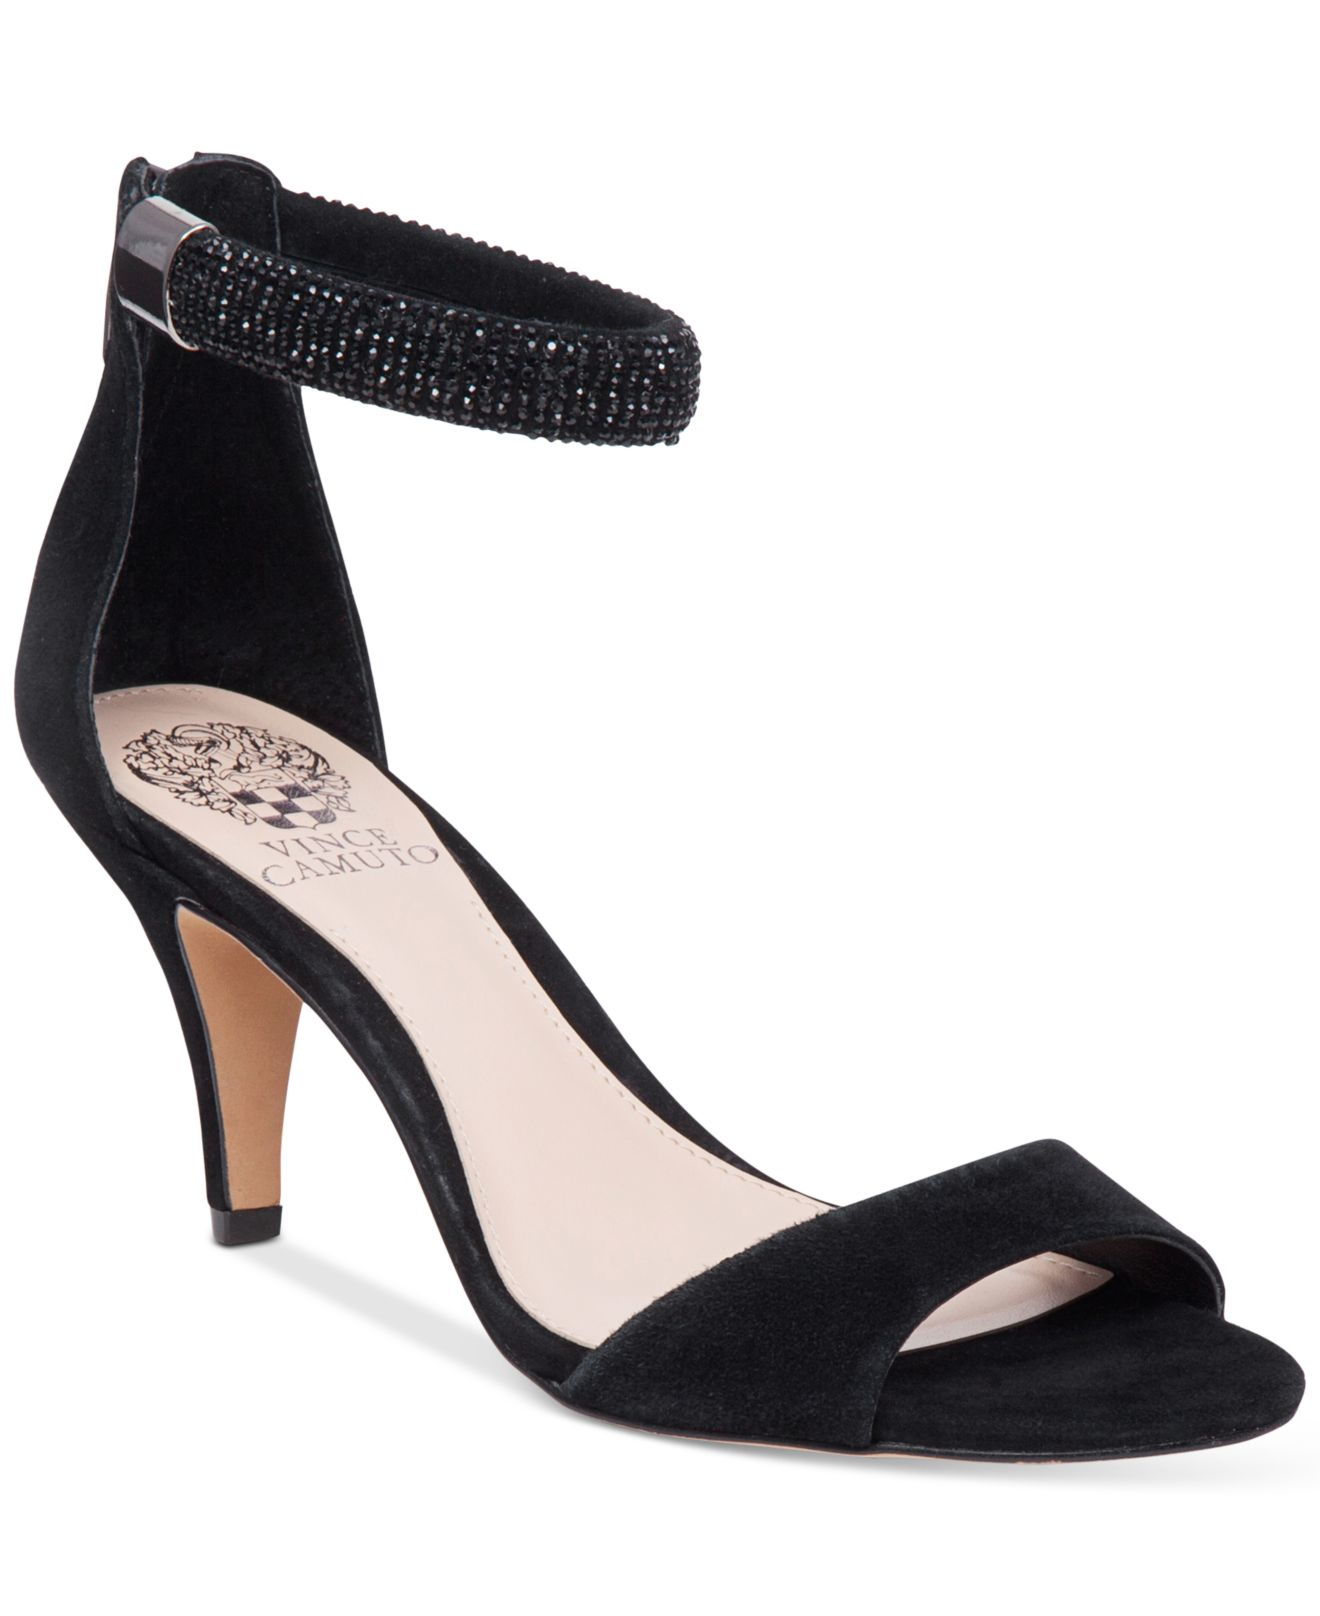 Vince camuto Mistin Suede Dress Sandals in Black - Lyst